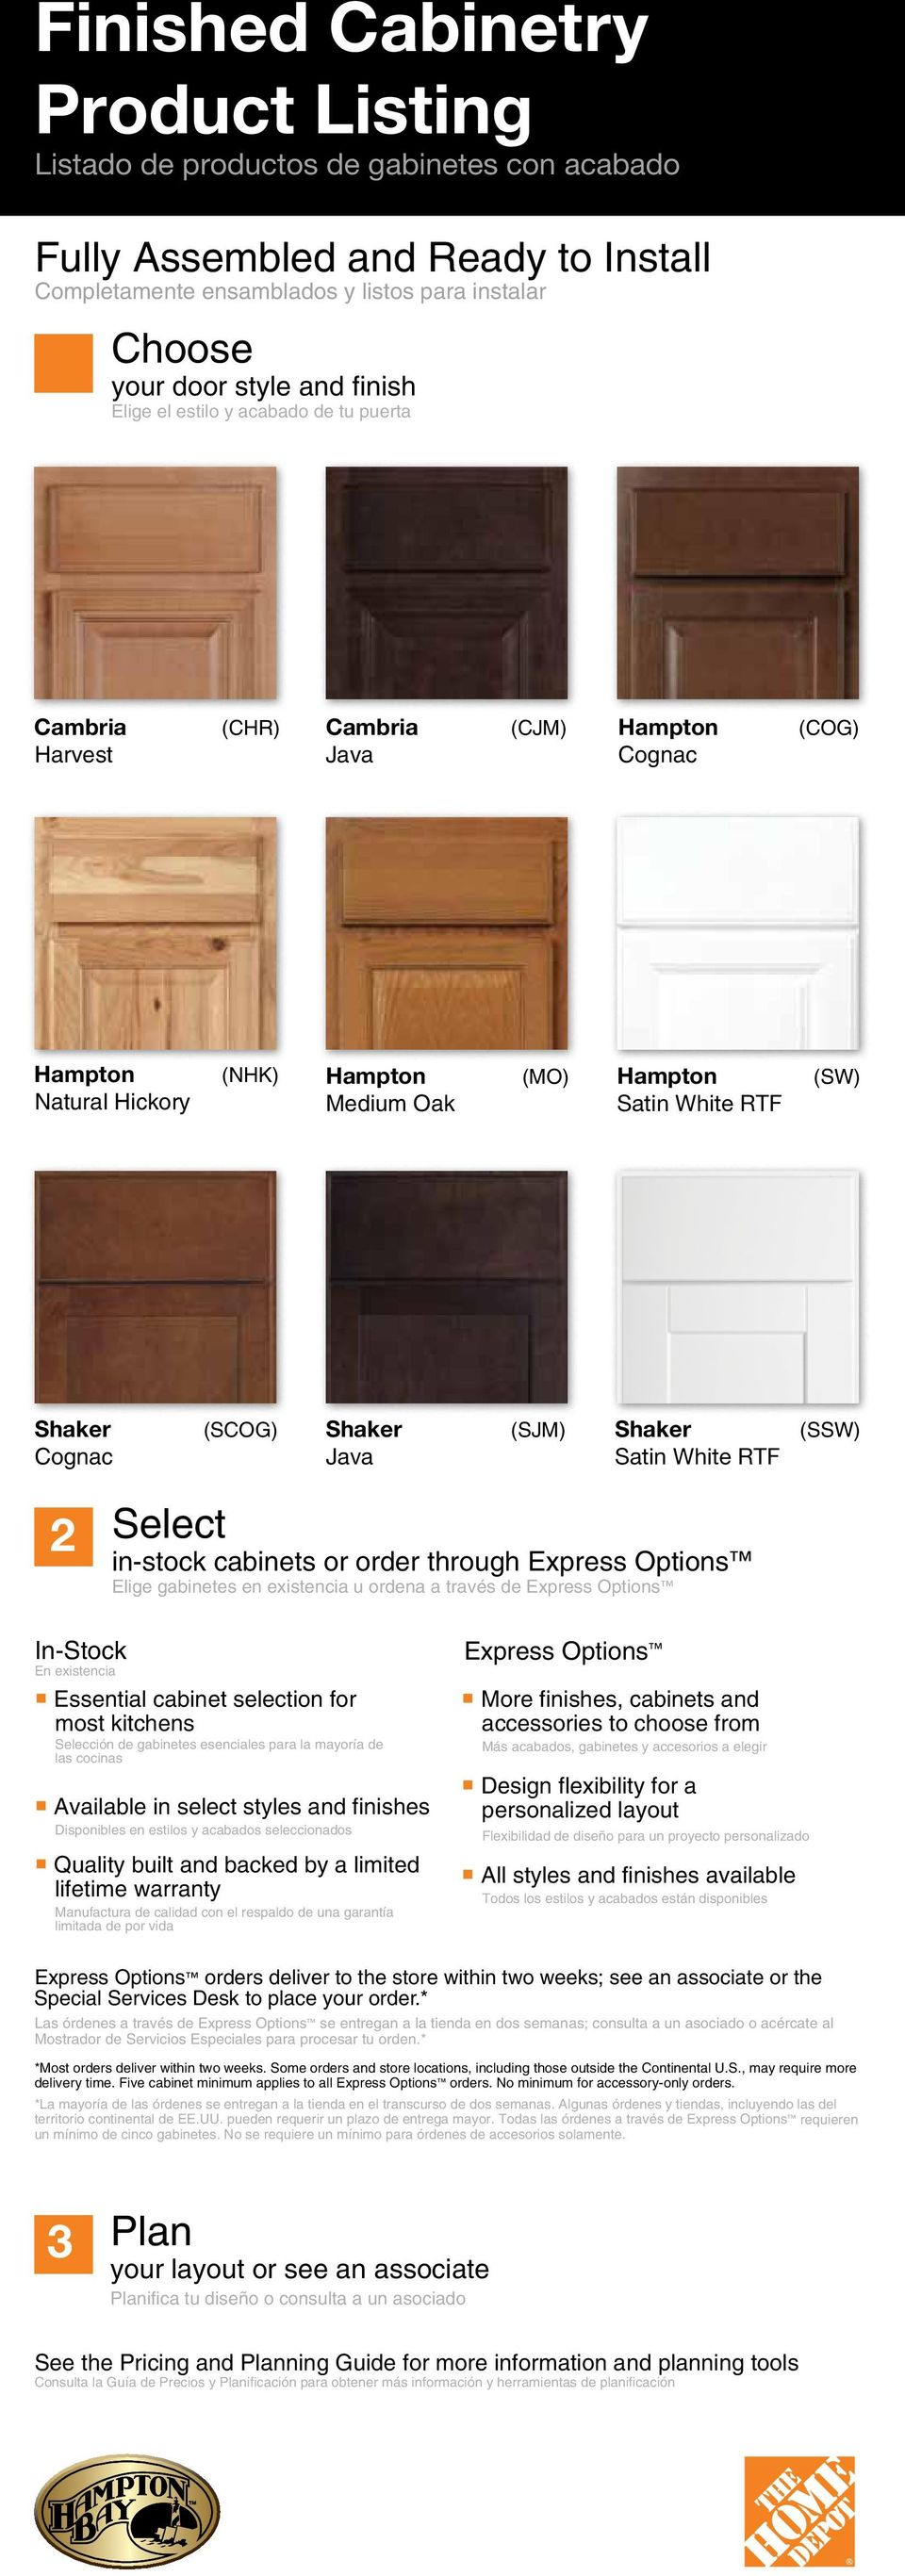 (SSW) 2 Select in-stock cabinets or order through Express Options Elige gabinetes en existencia u ordena a través de Express Options En existencia Essential cabinet selection for most kitchens